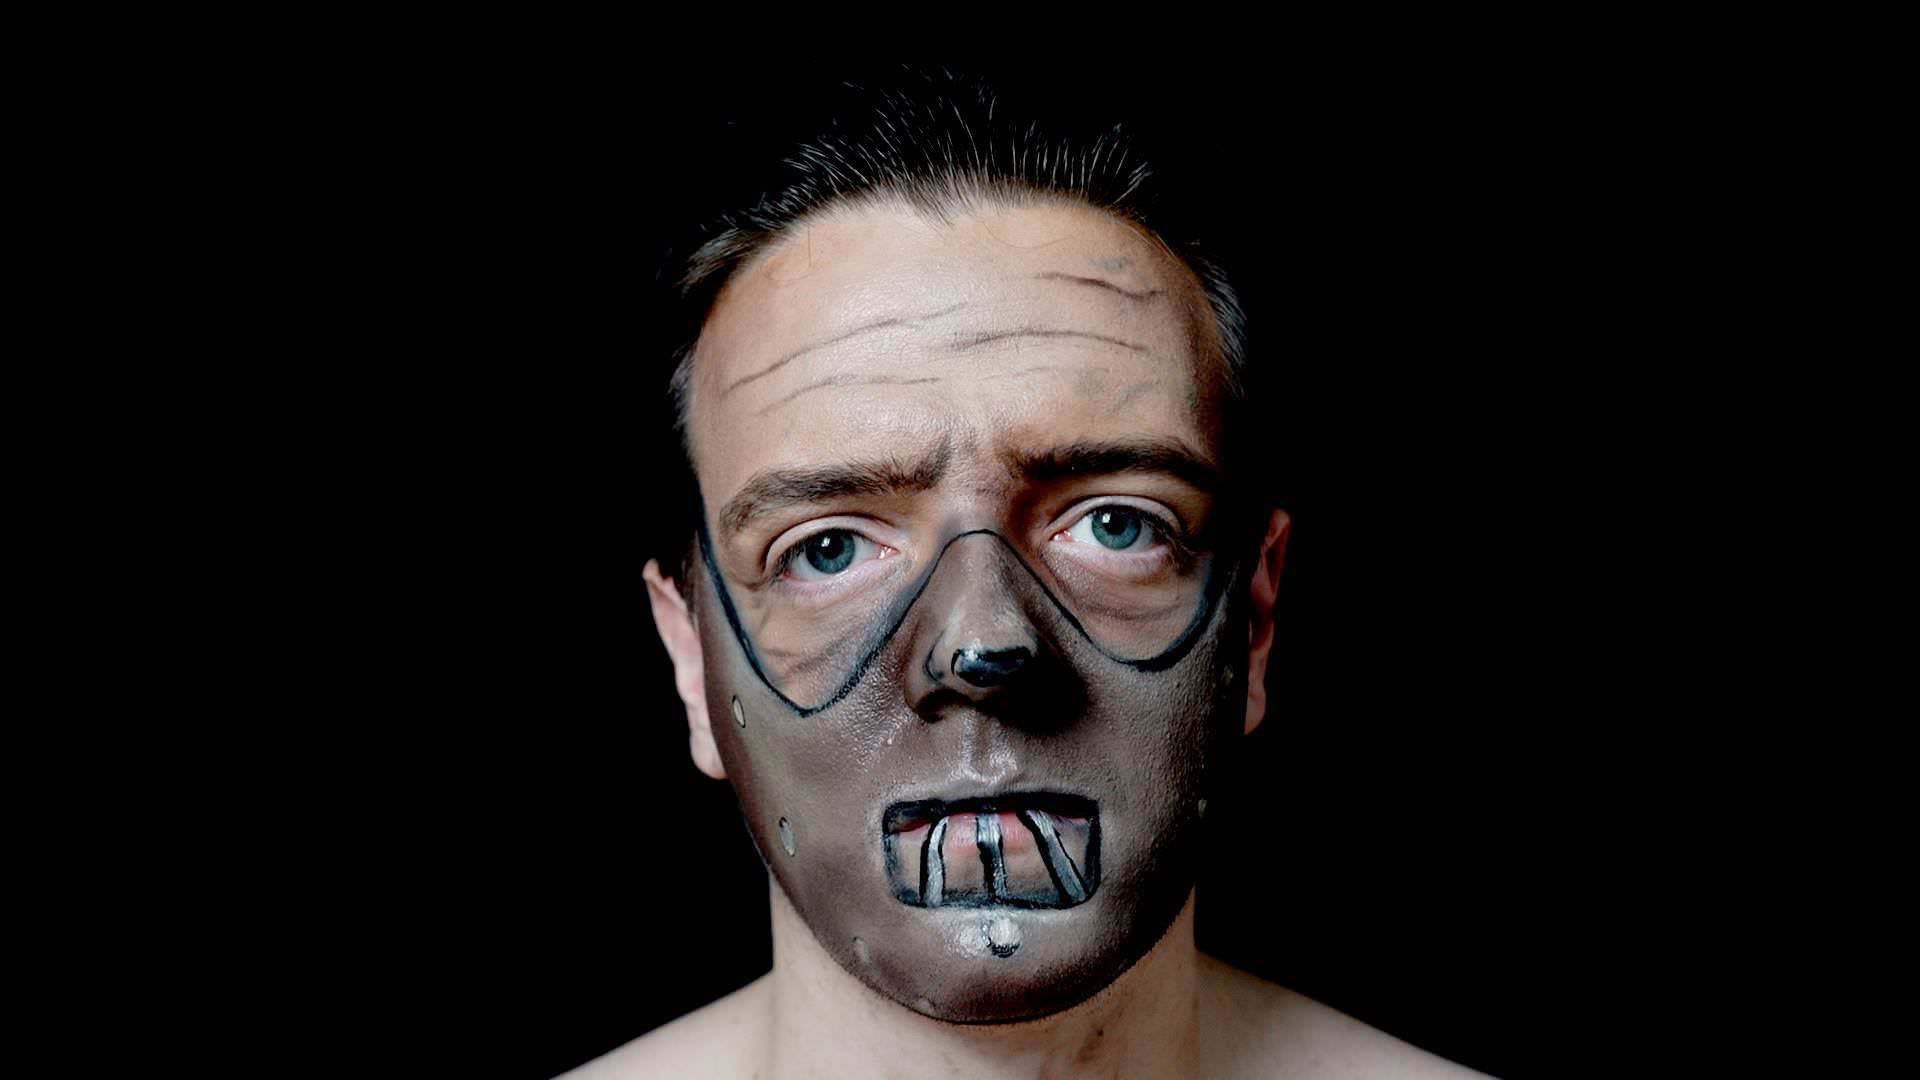 Halloween Face Paint Ideas - Hannibal Lecter Mask Makeup Tutorial!